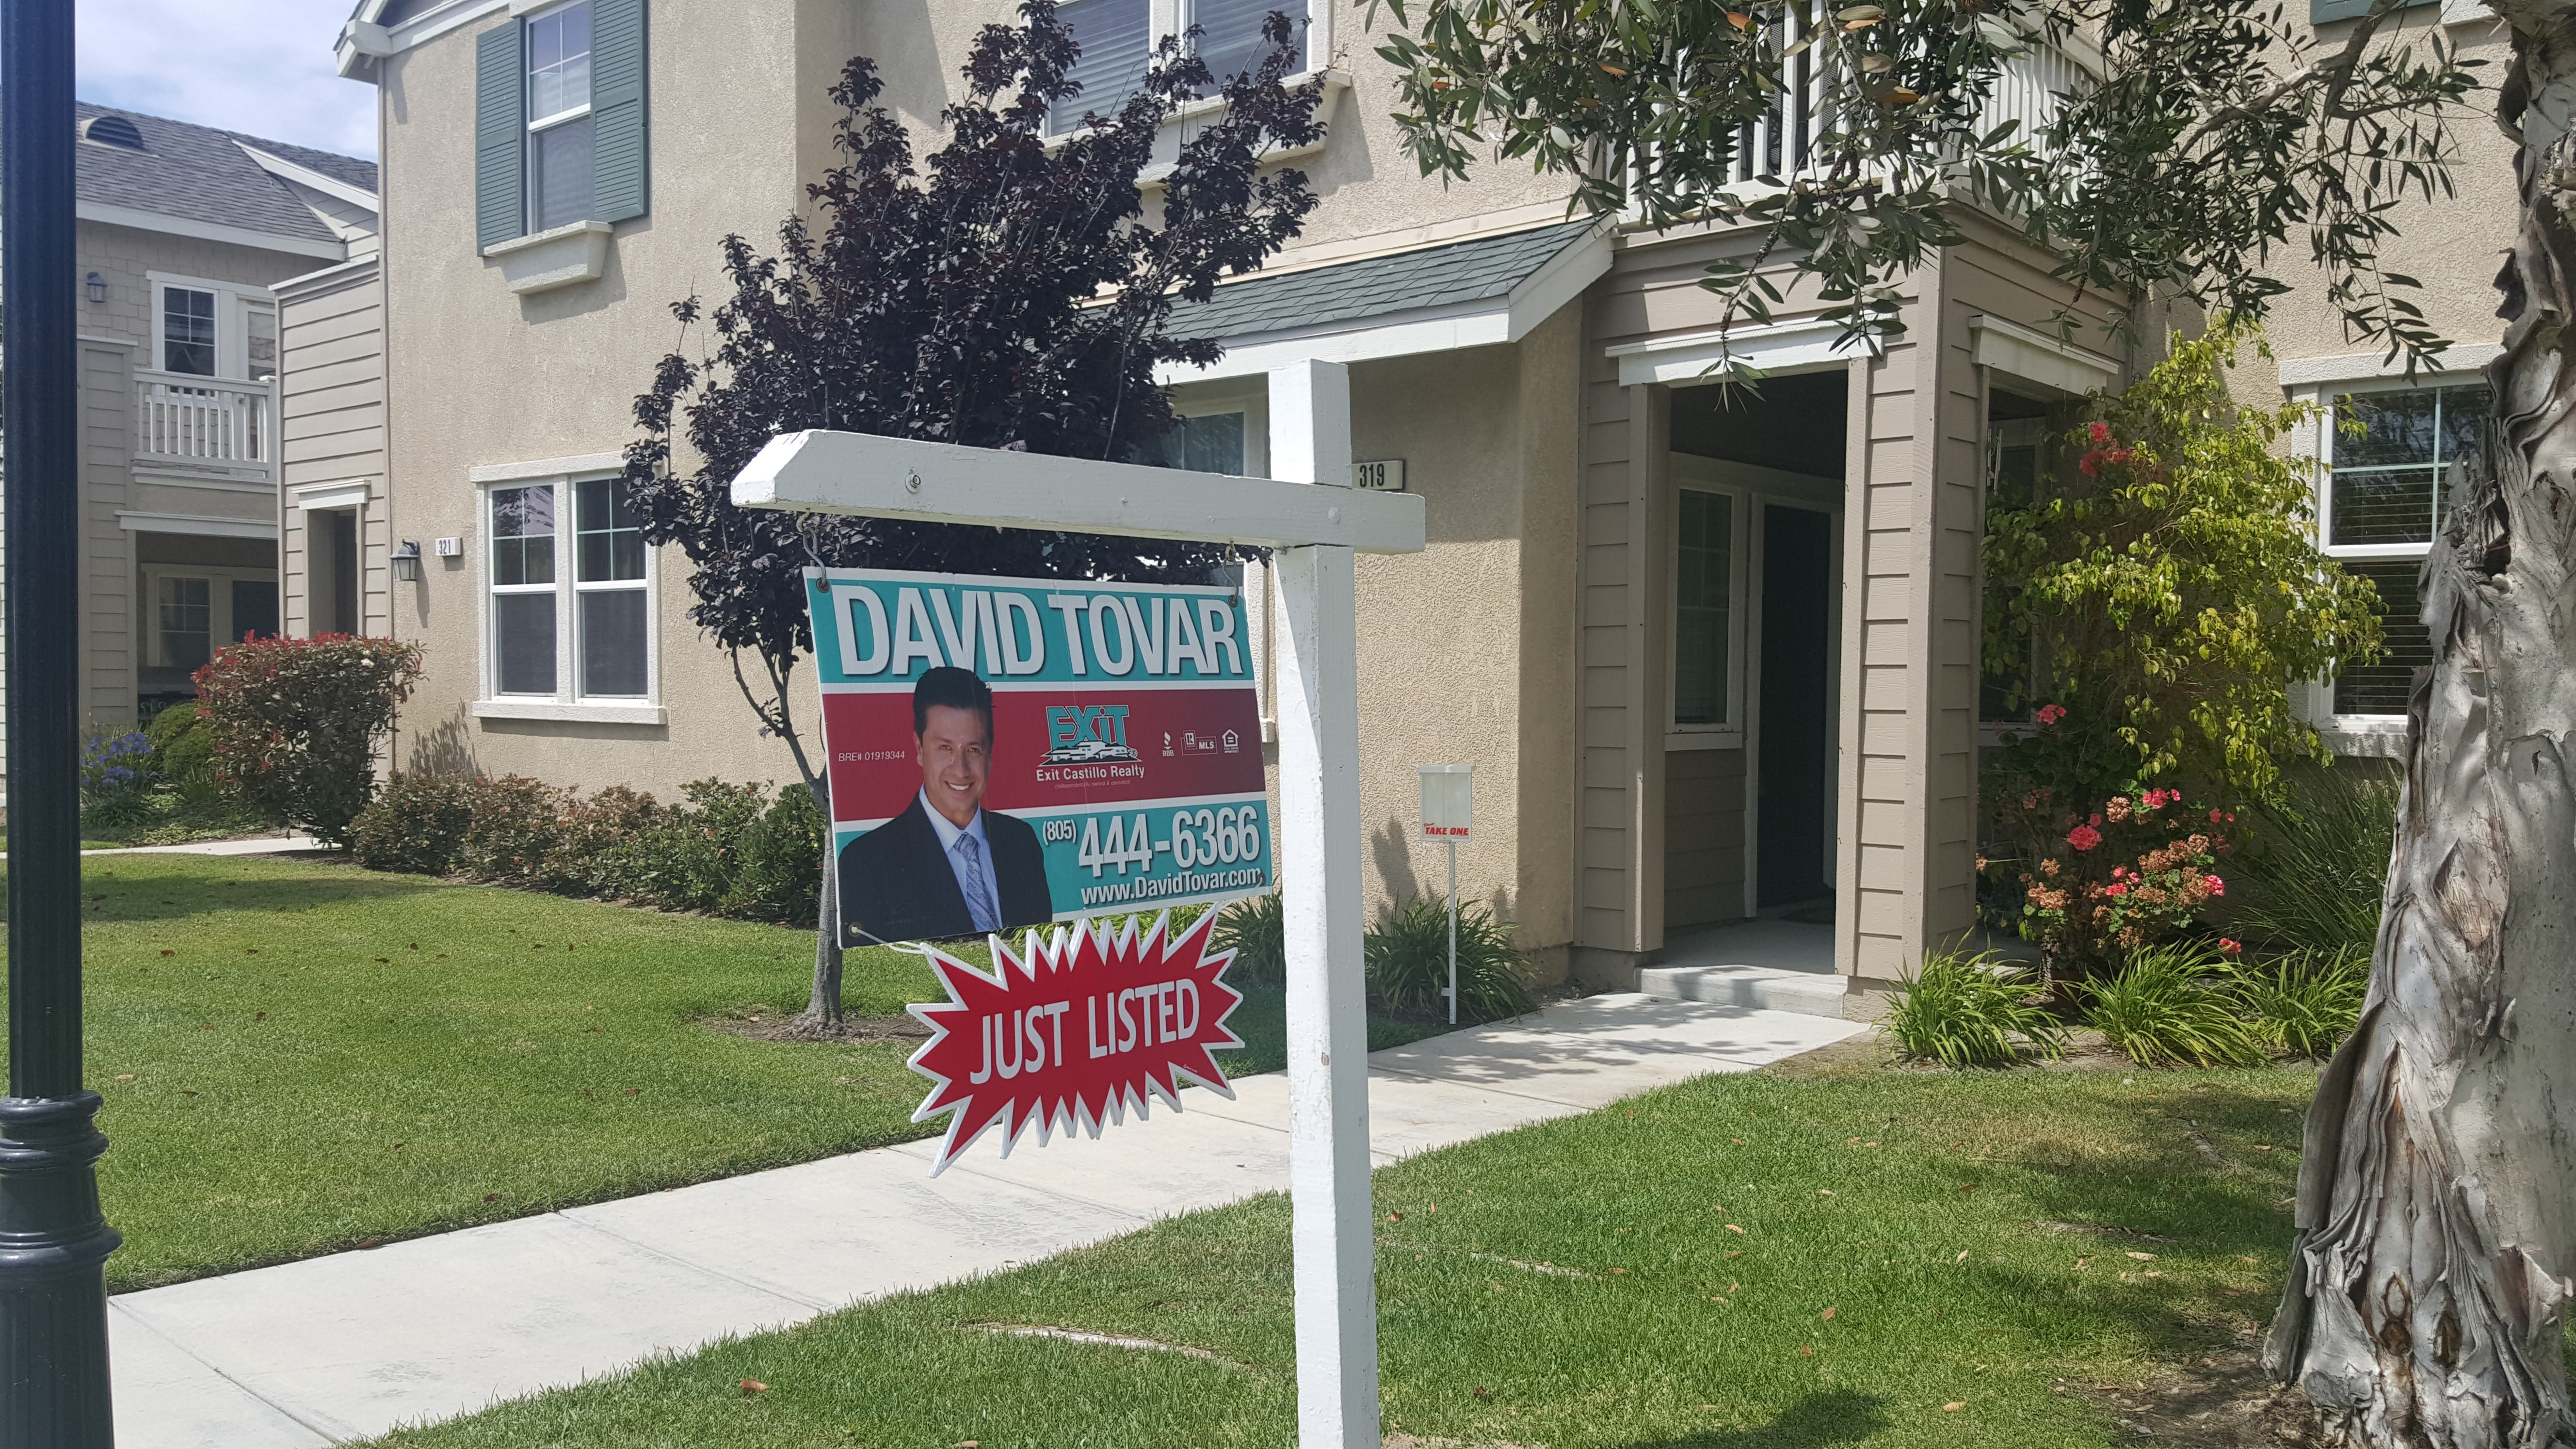 319 Forest Park Blvd Condo for Sale in Oxnard CA Riverpark Neighborhood